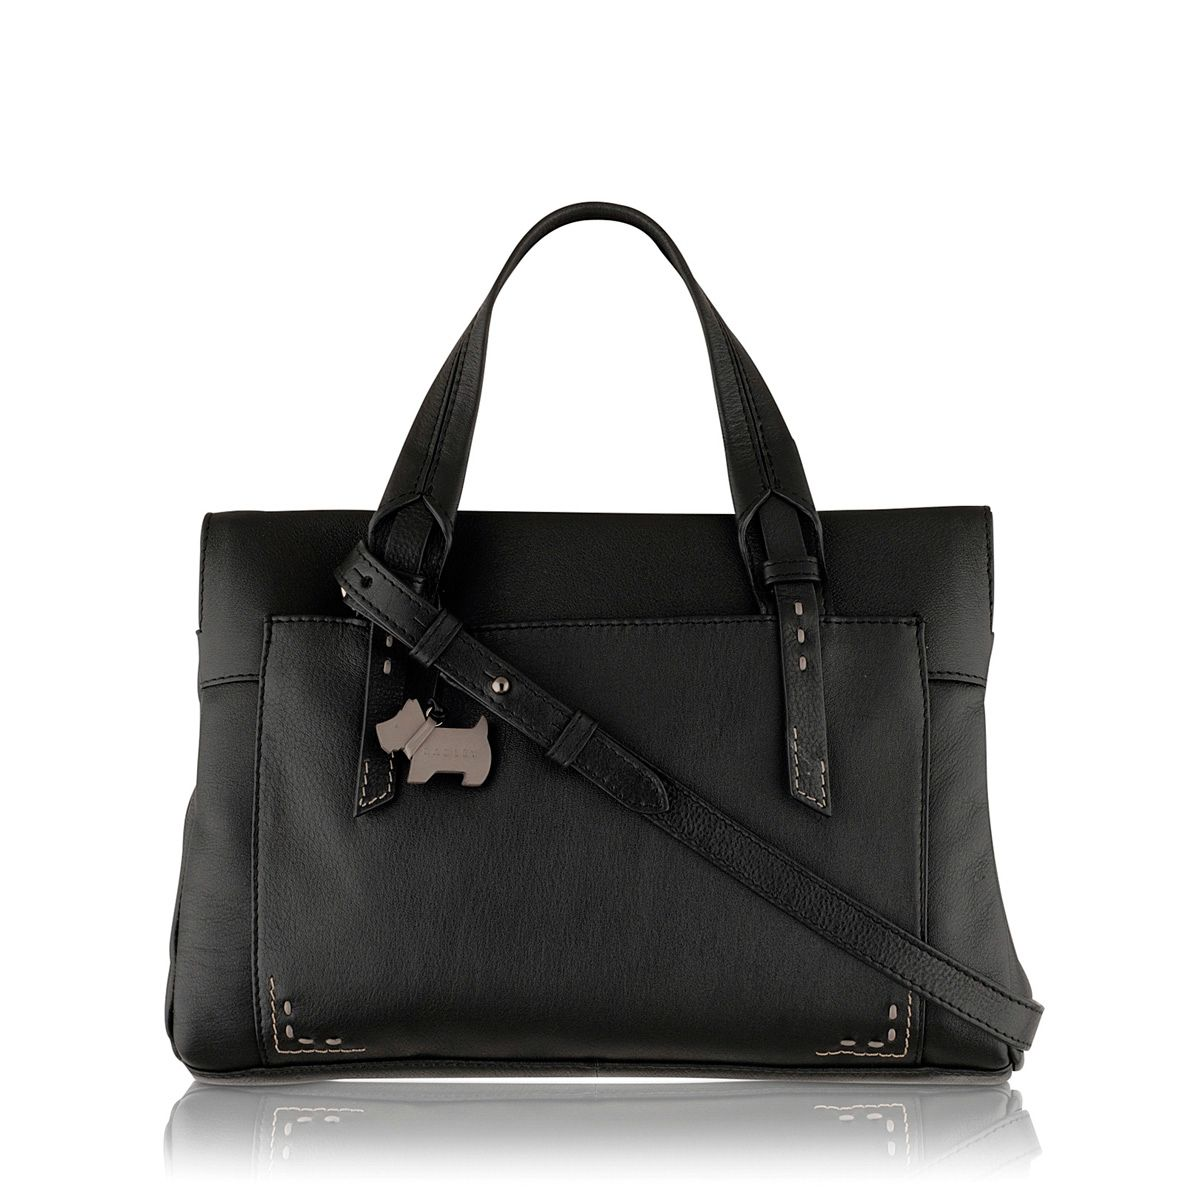 Barnsley black medium crossbody leather tote bag